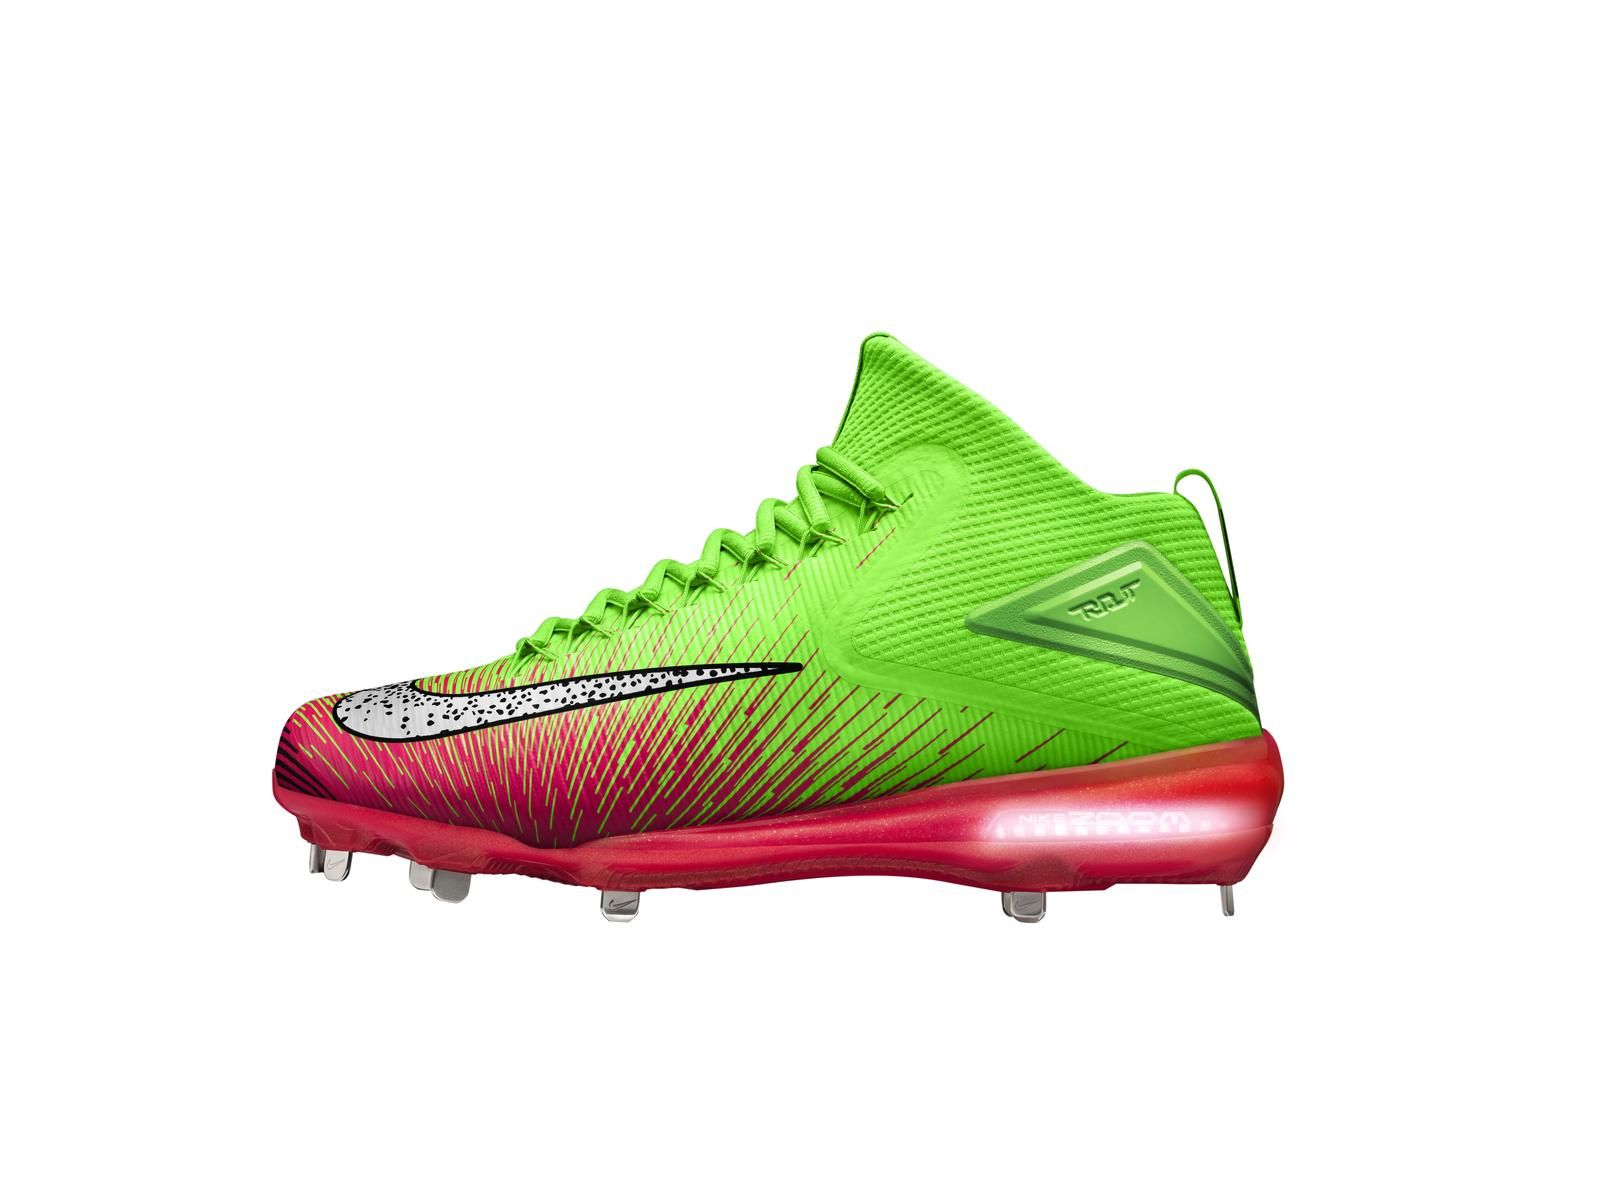 Nike News - The Nike Zoom Trout 3